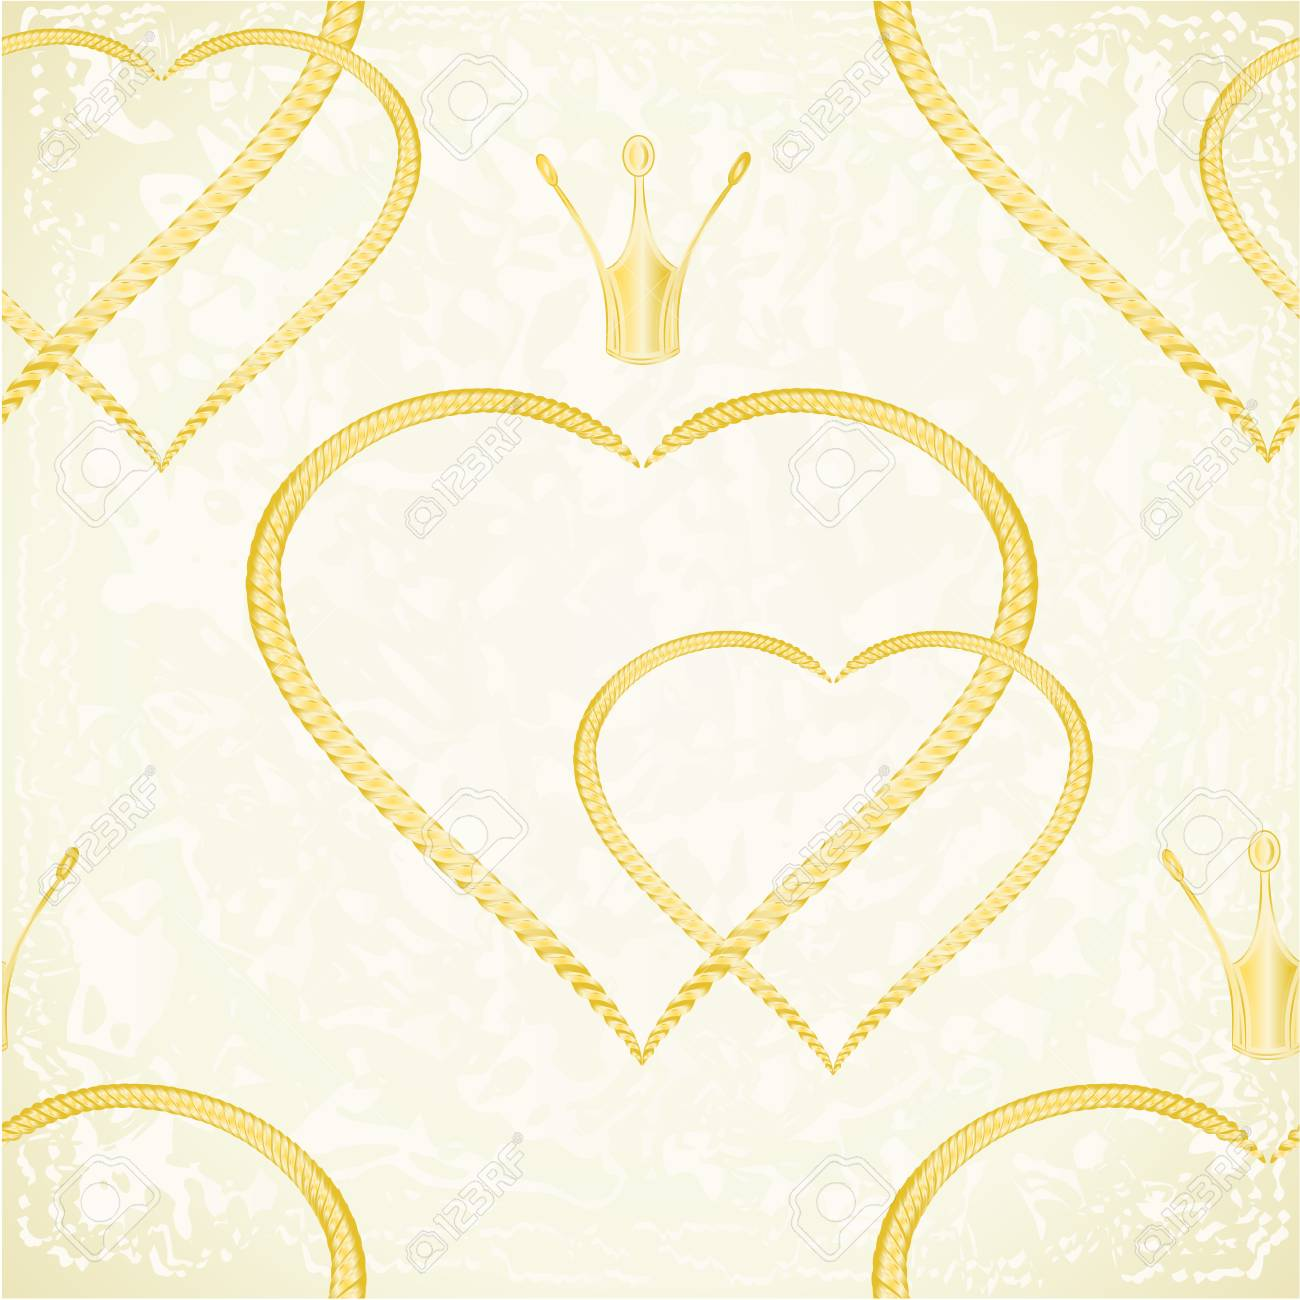 Standard bild texture golden hearts with a crown festive background vintage vector illustration editable hand drawn seamless